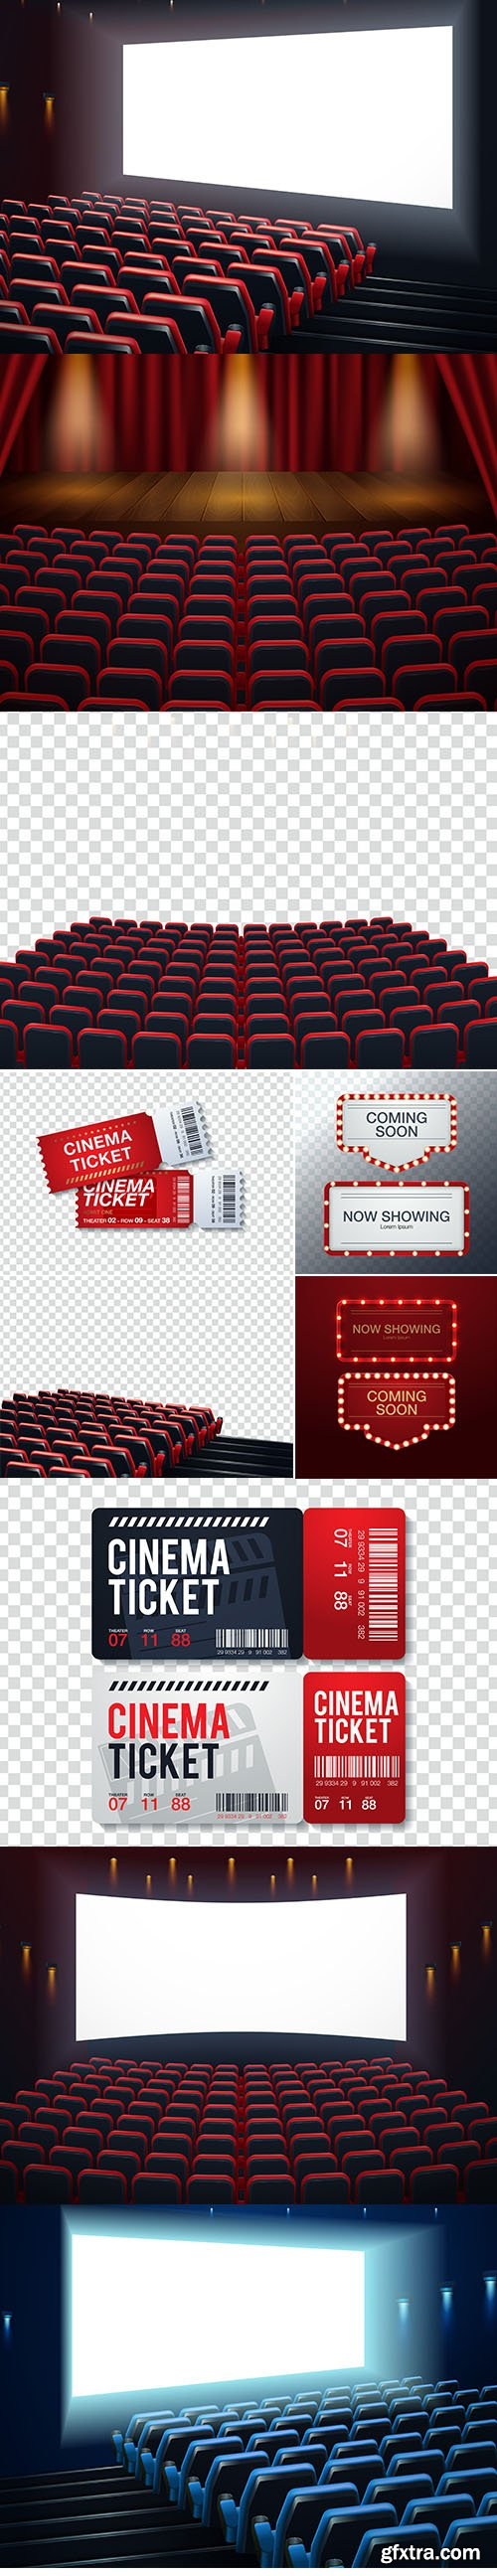 Vector Set of Interior Cinema, Movie, Theatre Backgrounds and Ticket Illustration